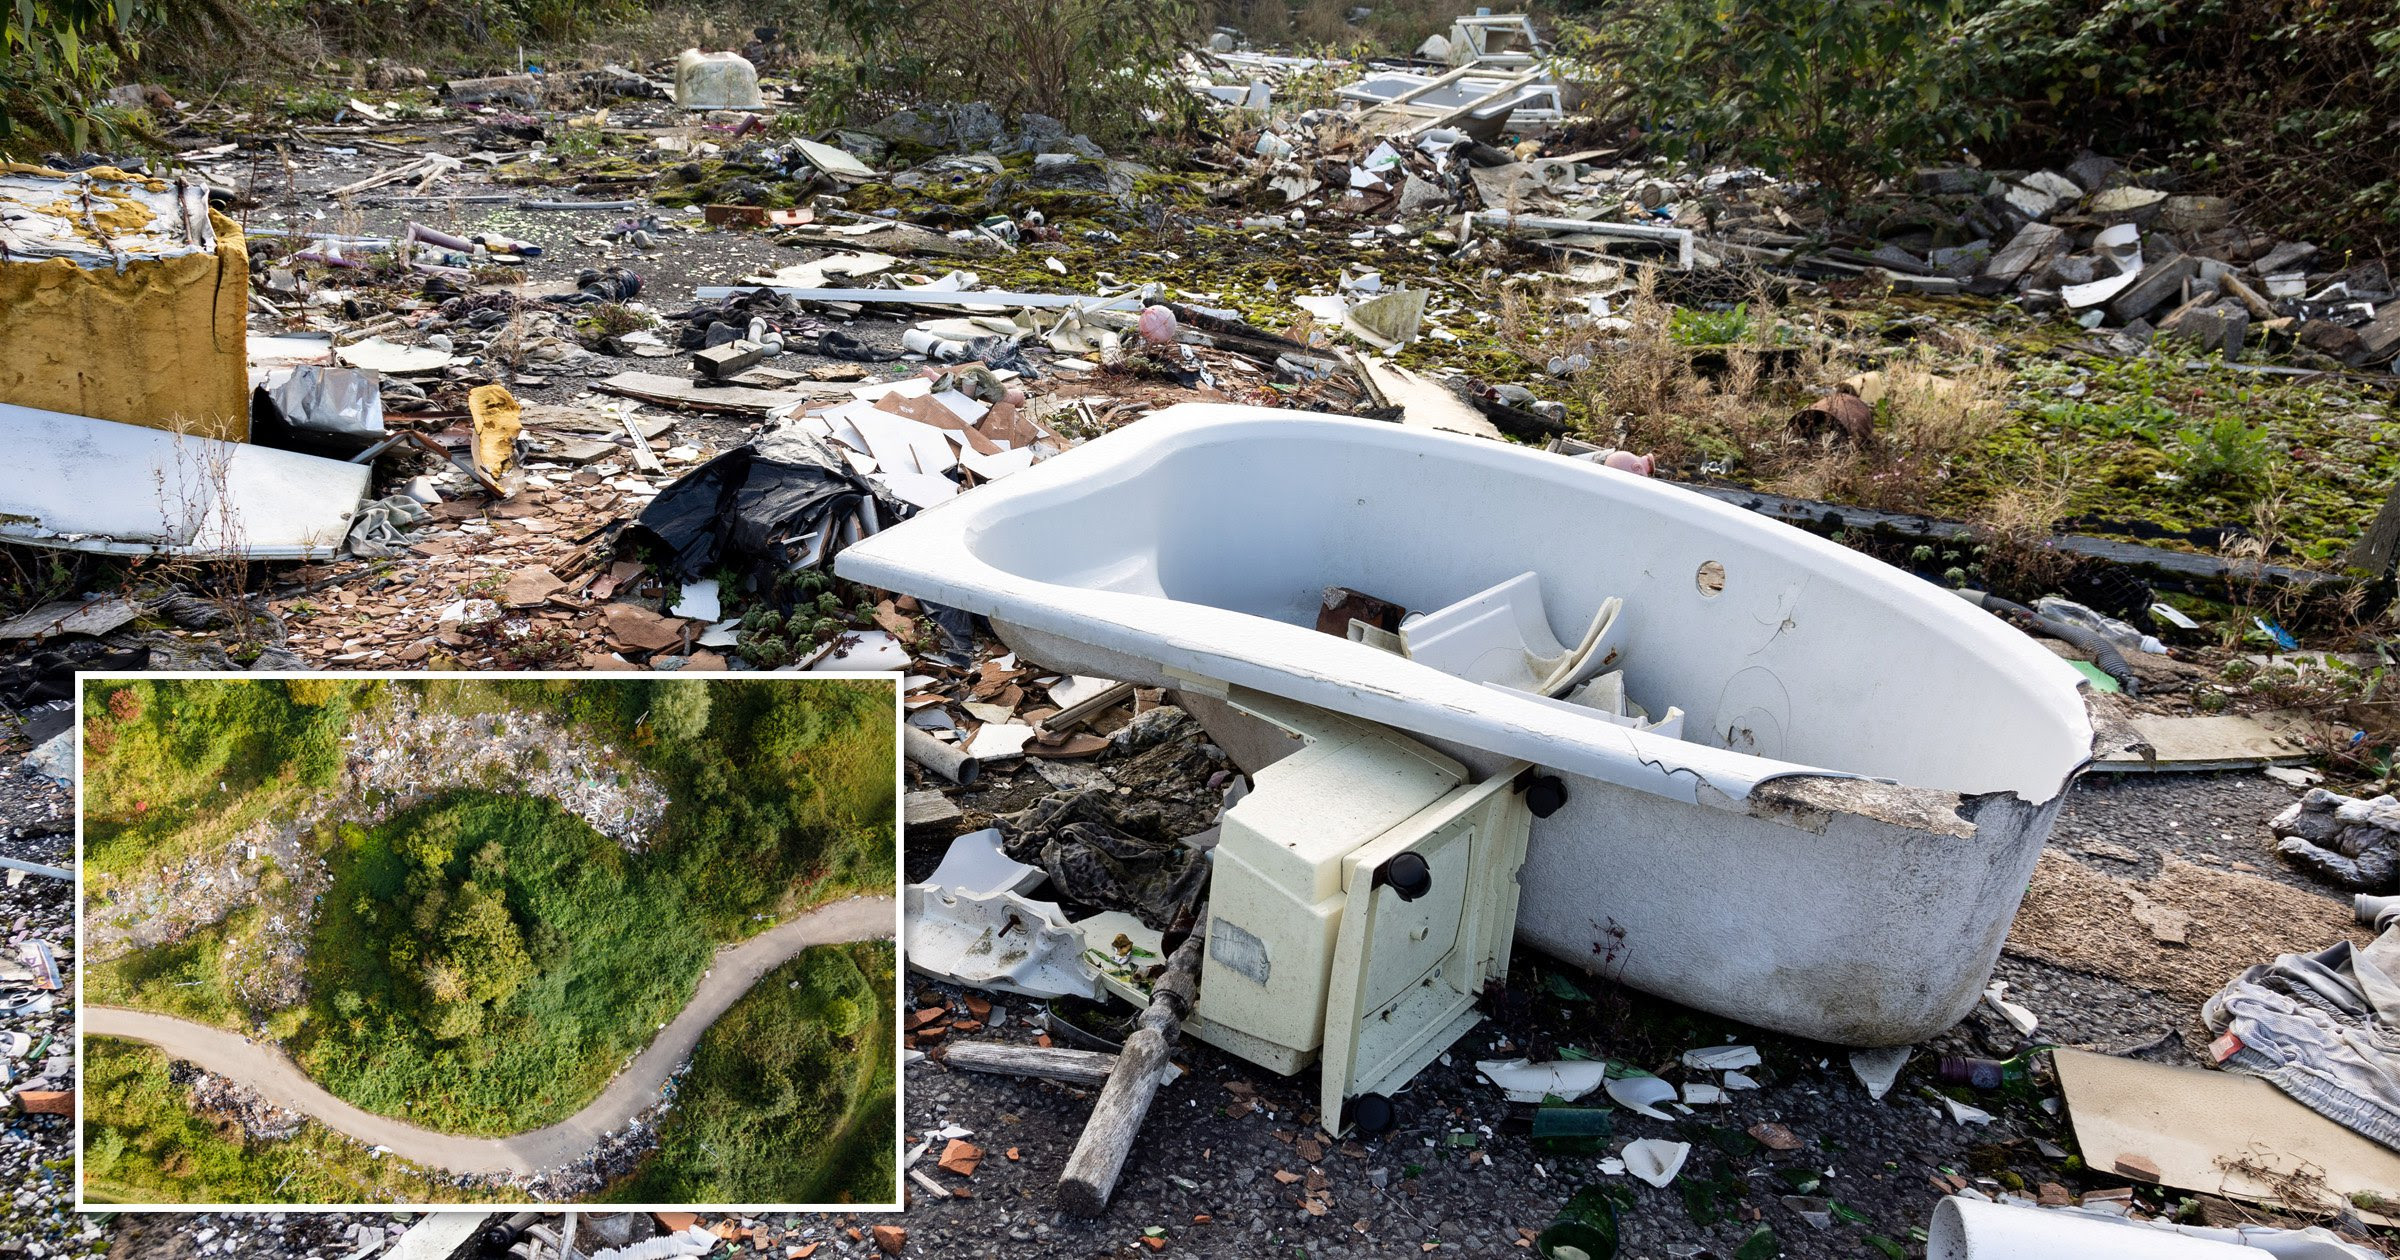 Britain's most fly-tipped road is finally going to be cleared